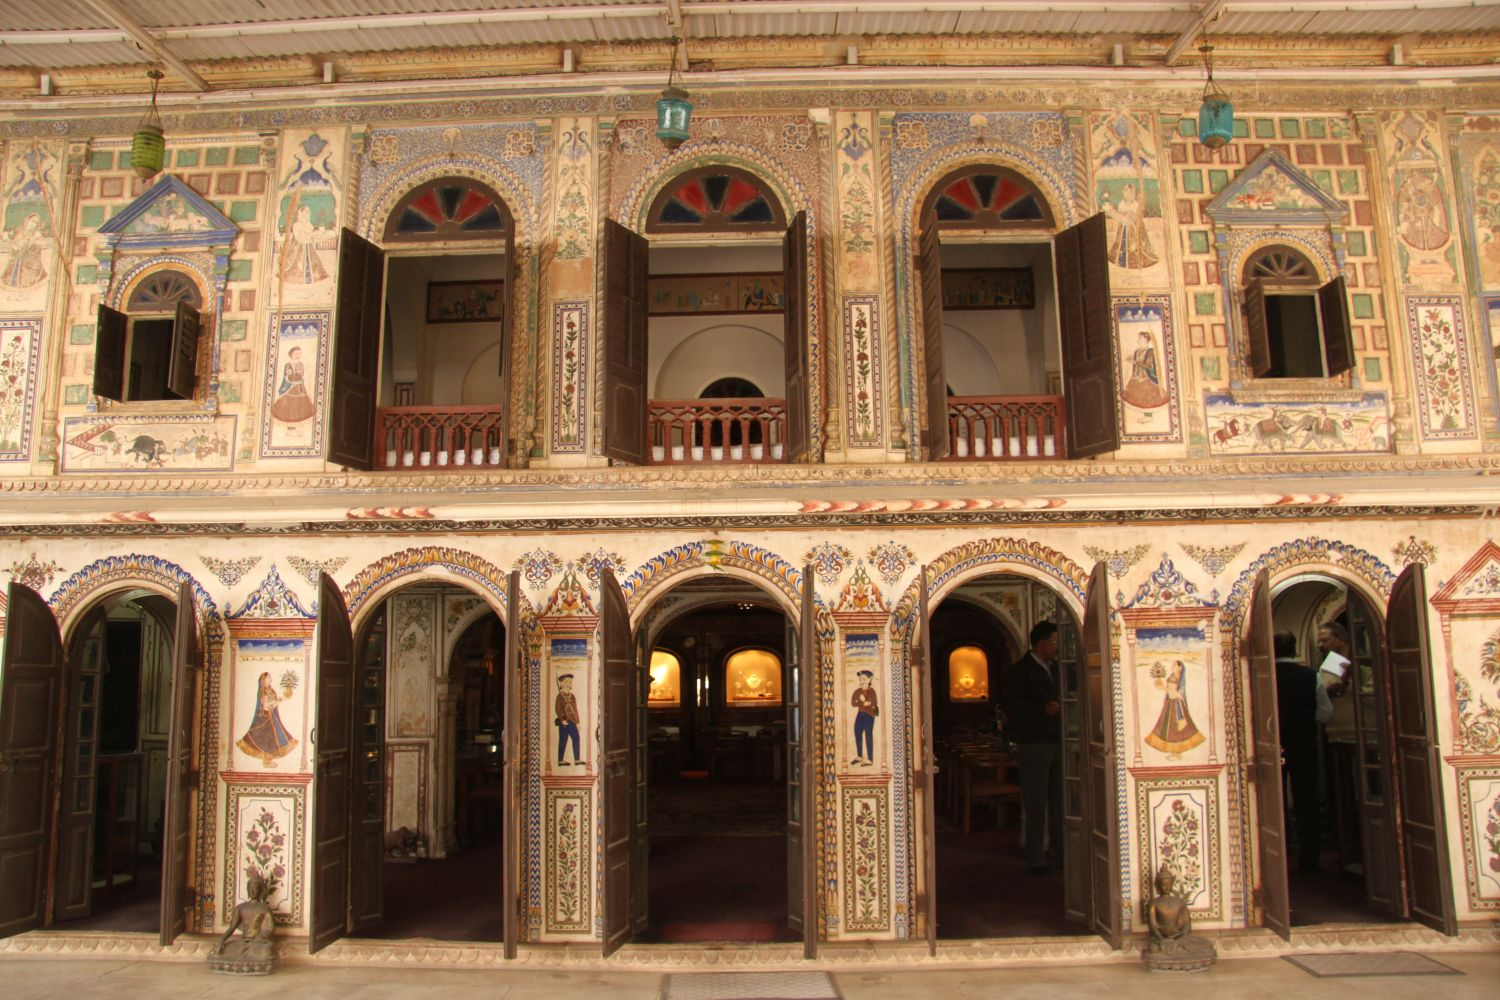 Jaipur | Royal Gems and Arts | Haveli (noble house ) of the 17th century | Jewelery and antique | Jeweler of royal Rajasthan families | Santi Choudary owner | Photo sandrine cohen